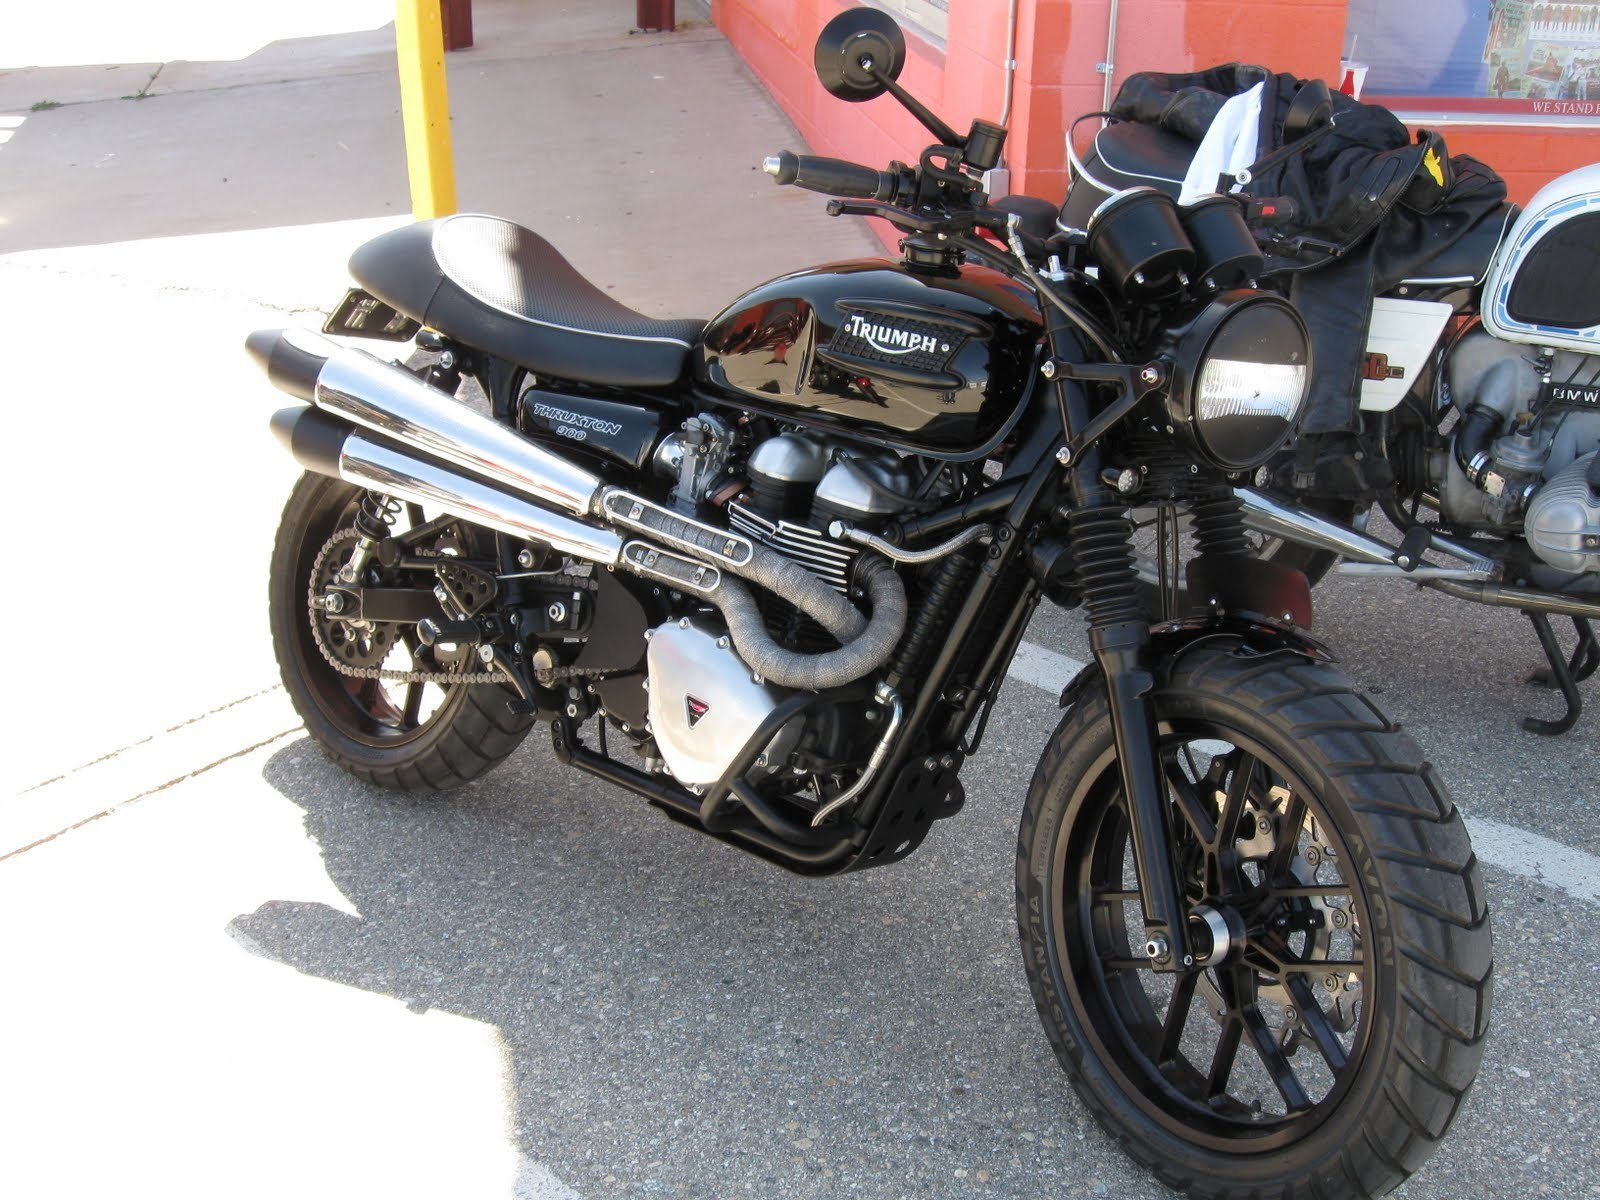 scrambler pics page 76 triumph forum triumph rat motorcycle forums. Black Bedroom Furniture Sets. Home Design Ideas